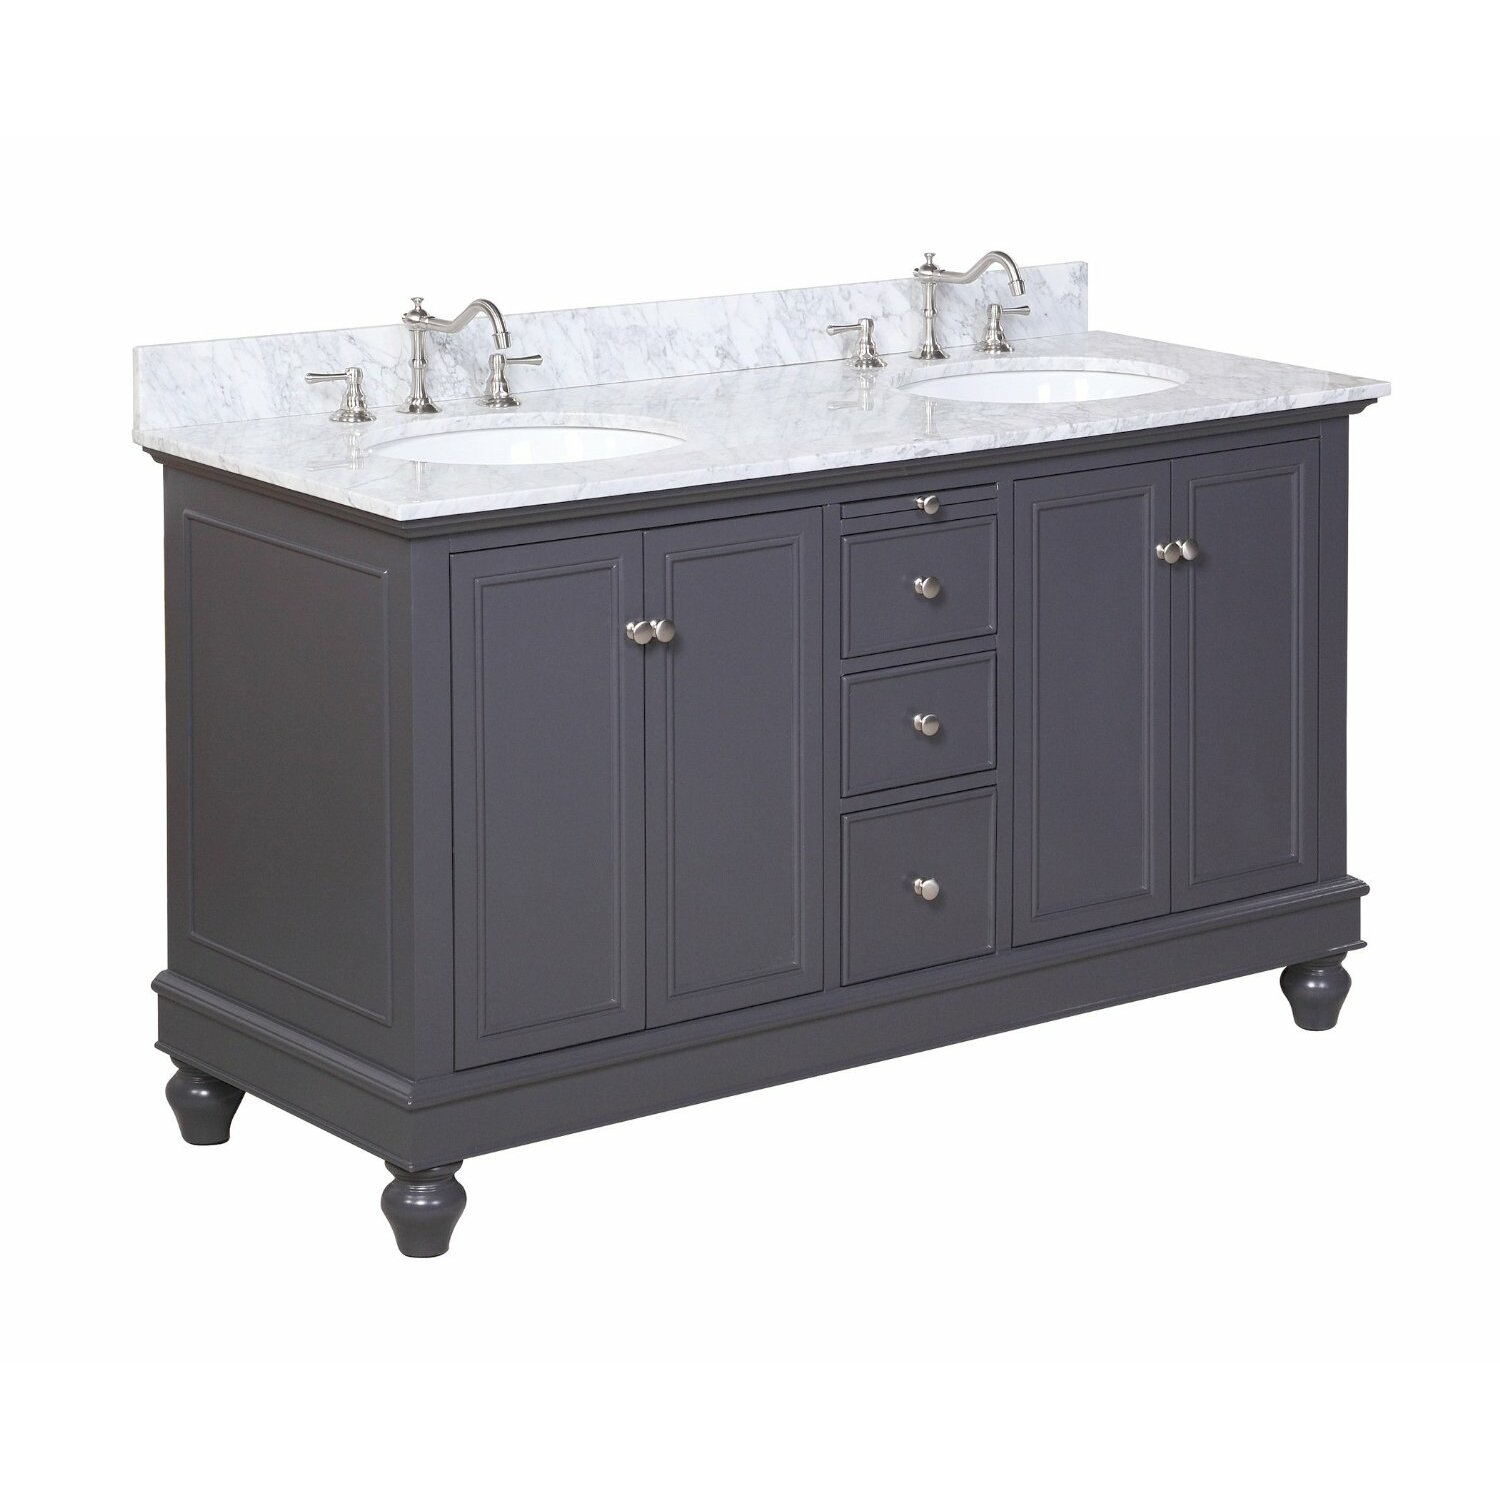 Kbc Bella 60 Double Bathroom Vanity Set Reviews Wayfair